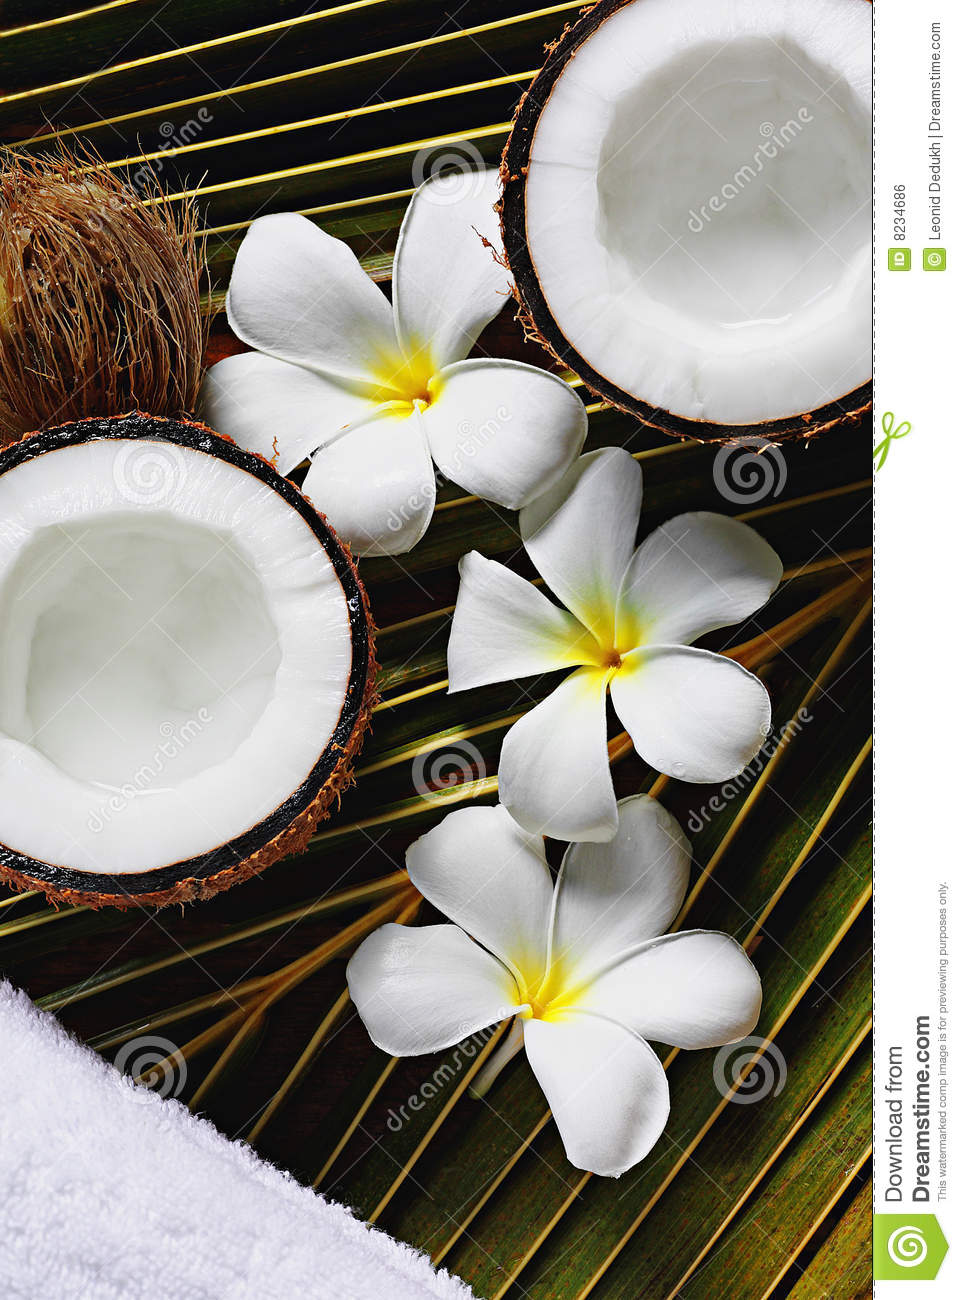 Spa Coconut Royalty Free Stock Image Image 8234686